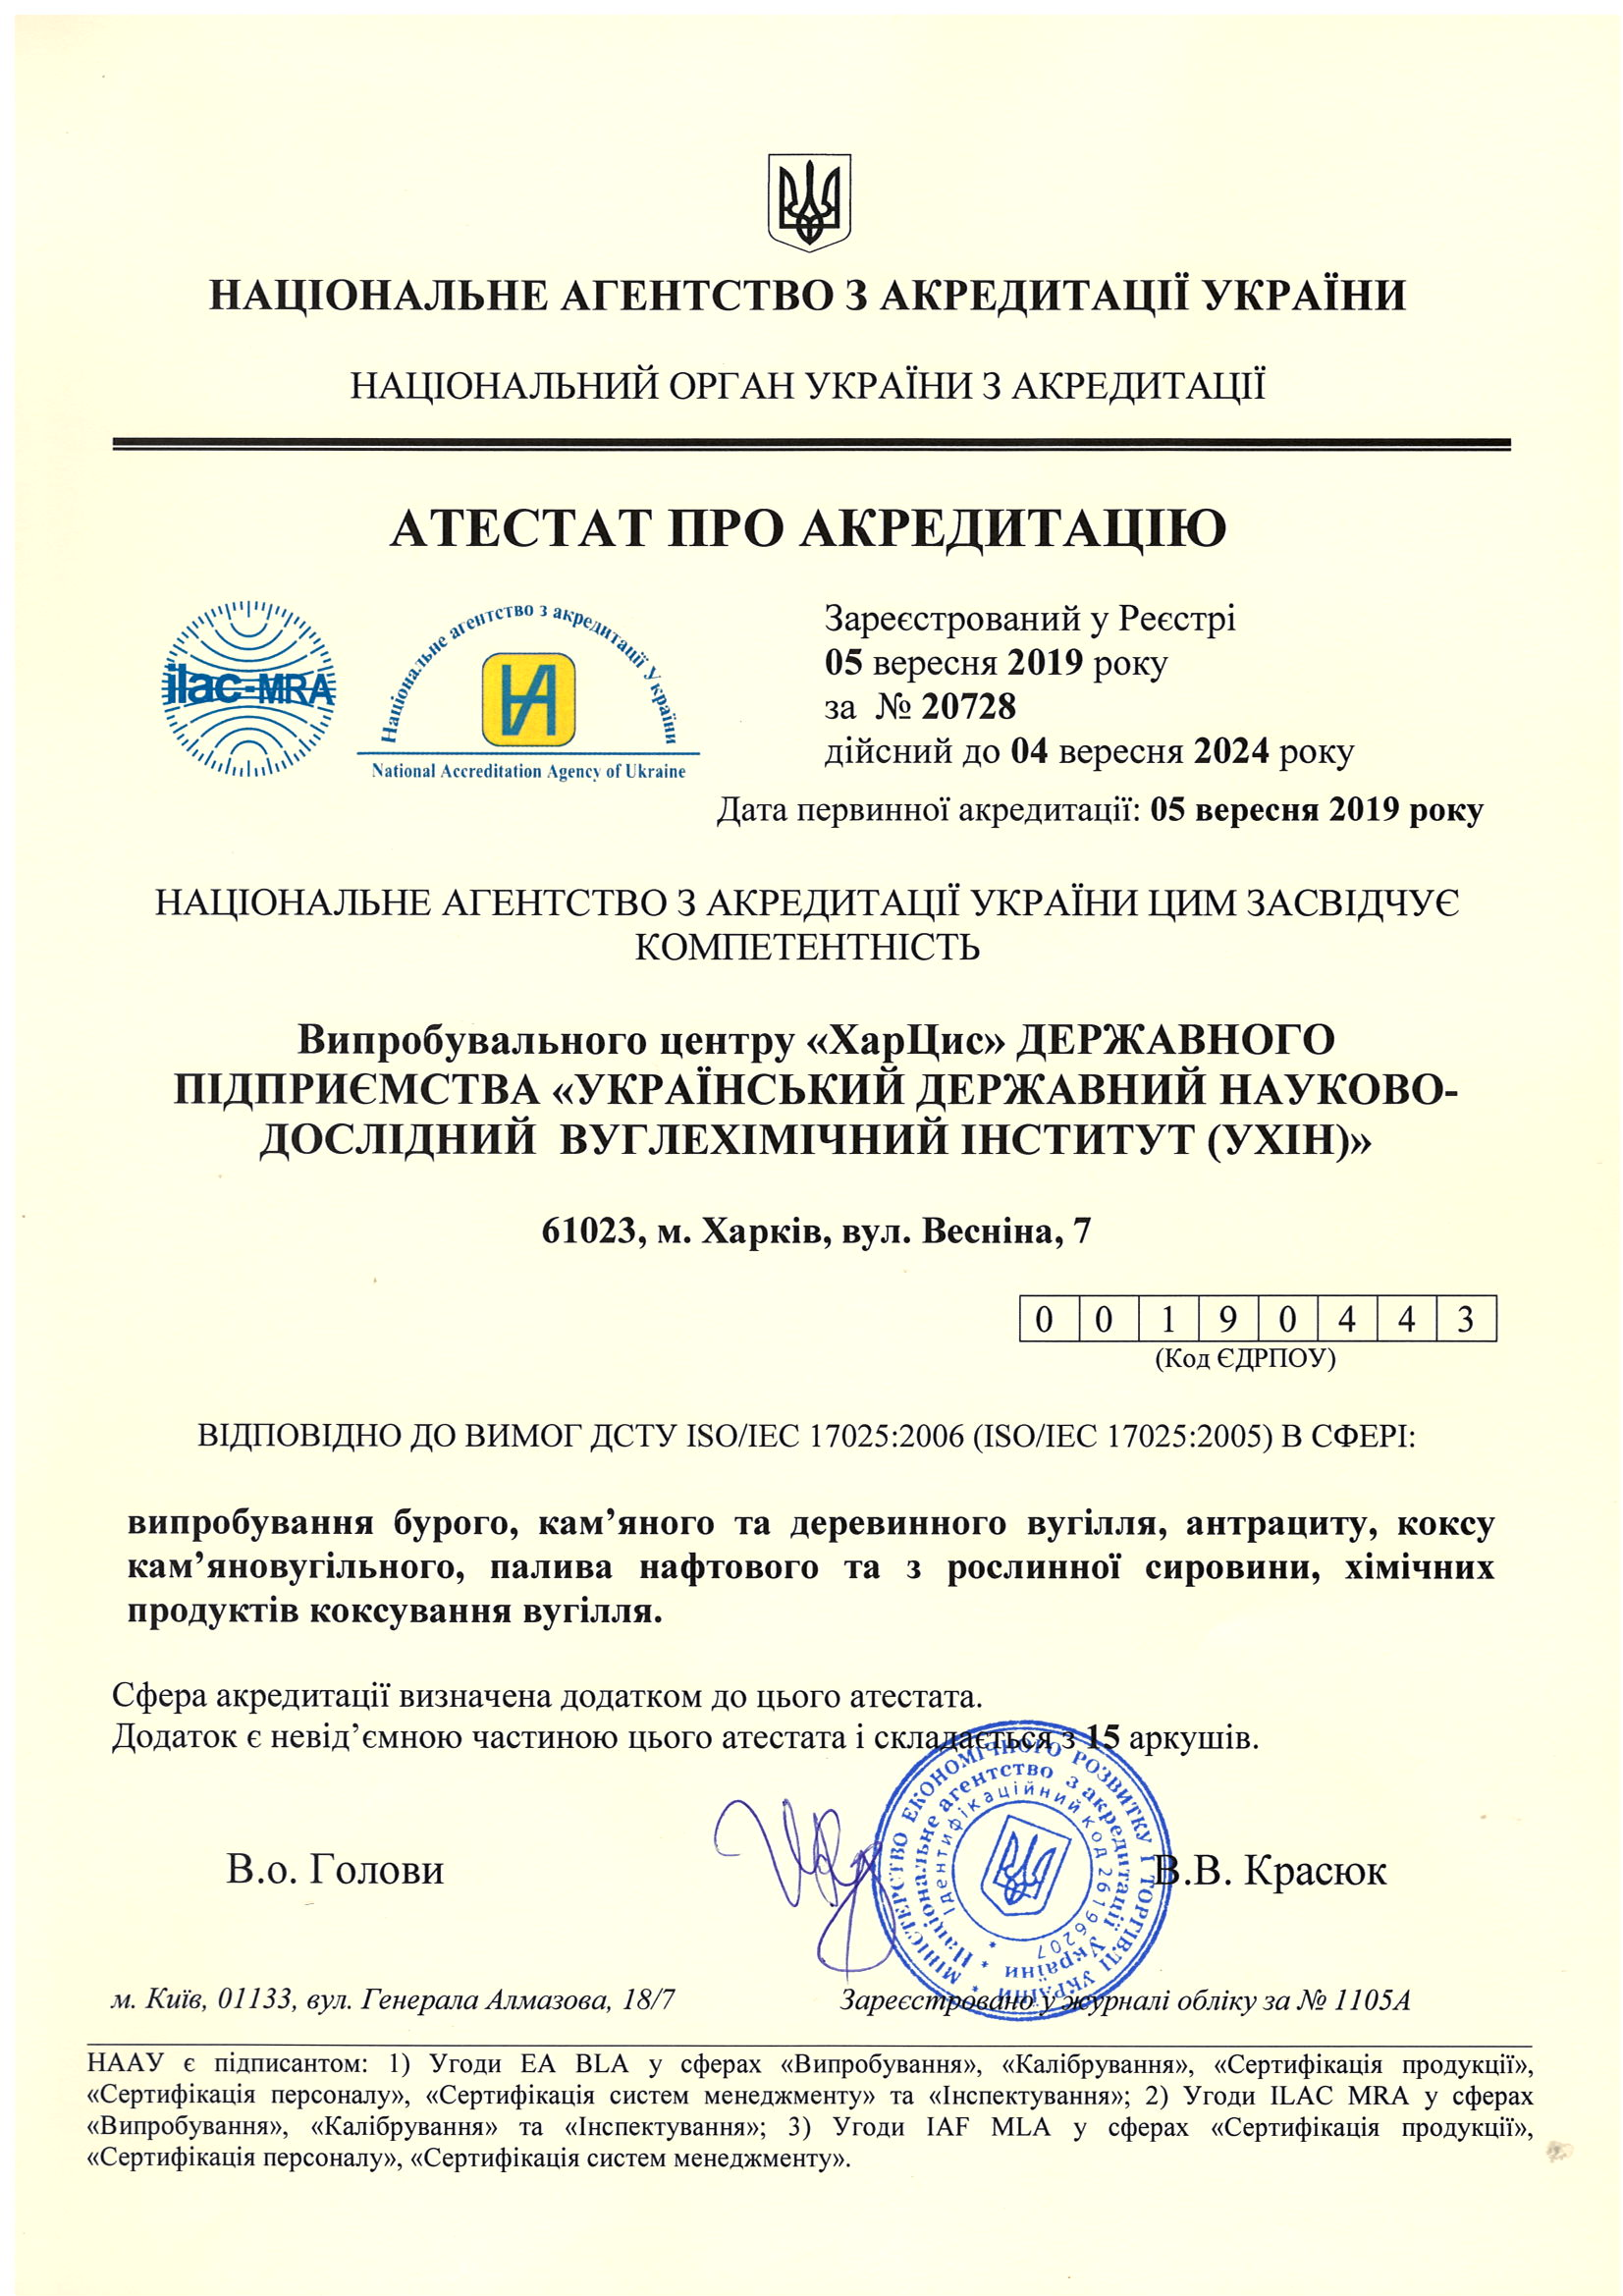 Certificate of accreditation of the testing center «HarCis» of the State Enterprise «UKRAINIAN STATE RESEARCH COAL INCHEMICAL INSTITUTE (UHIN)»